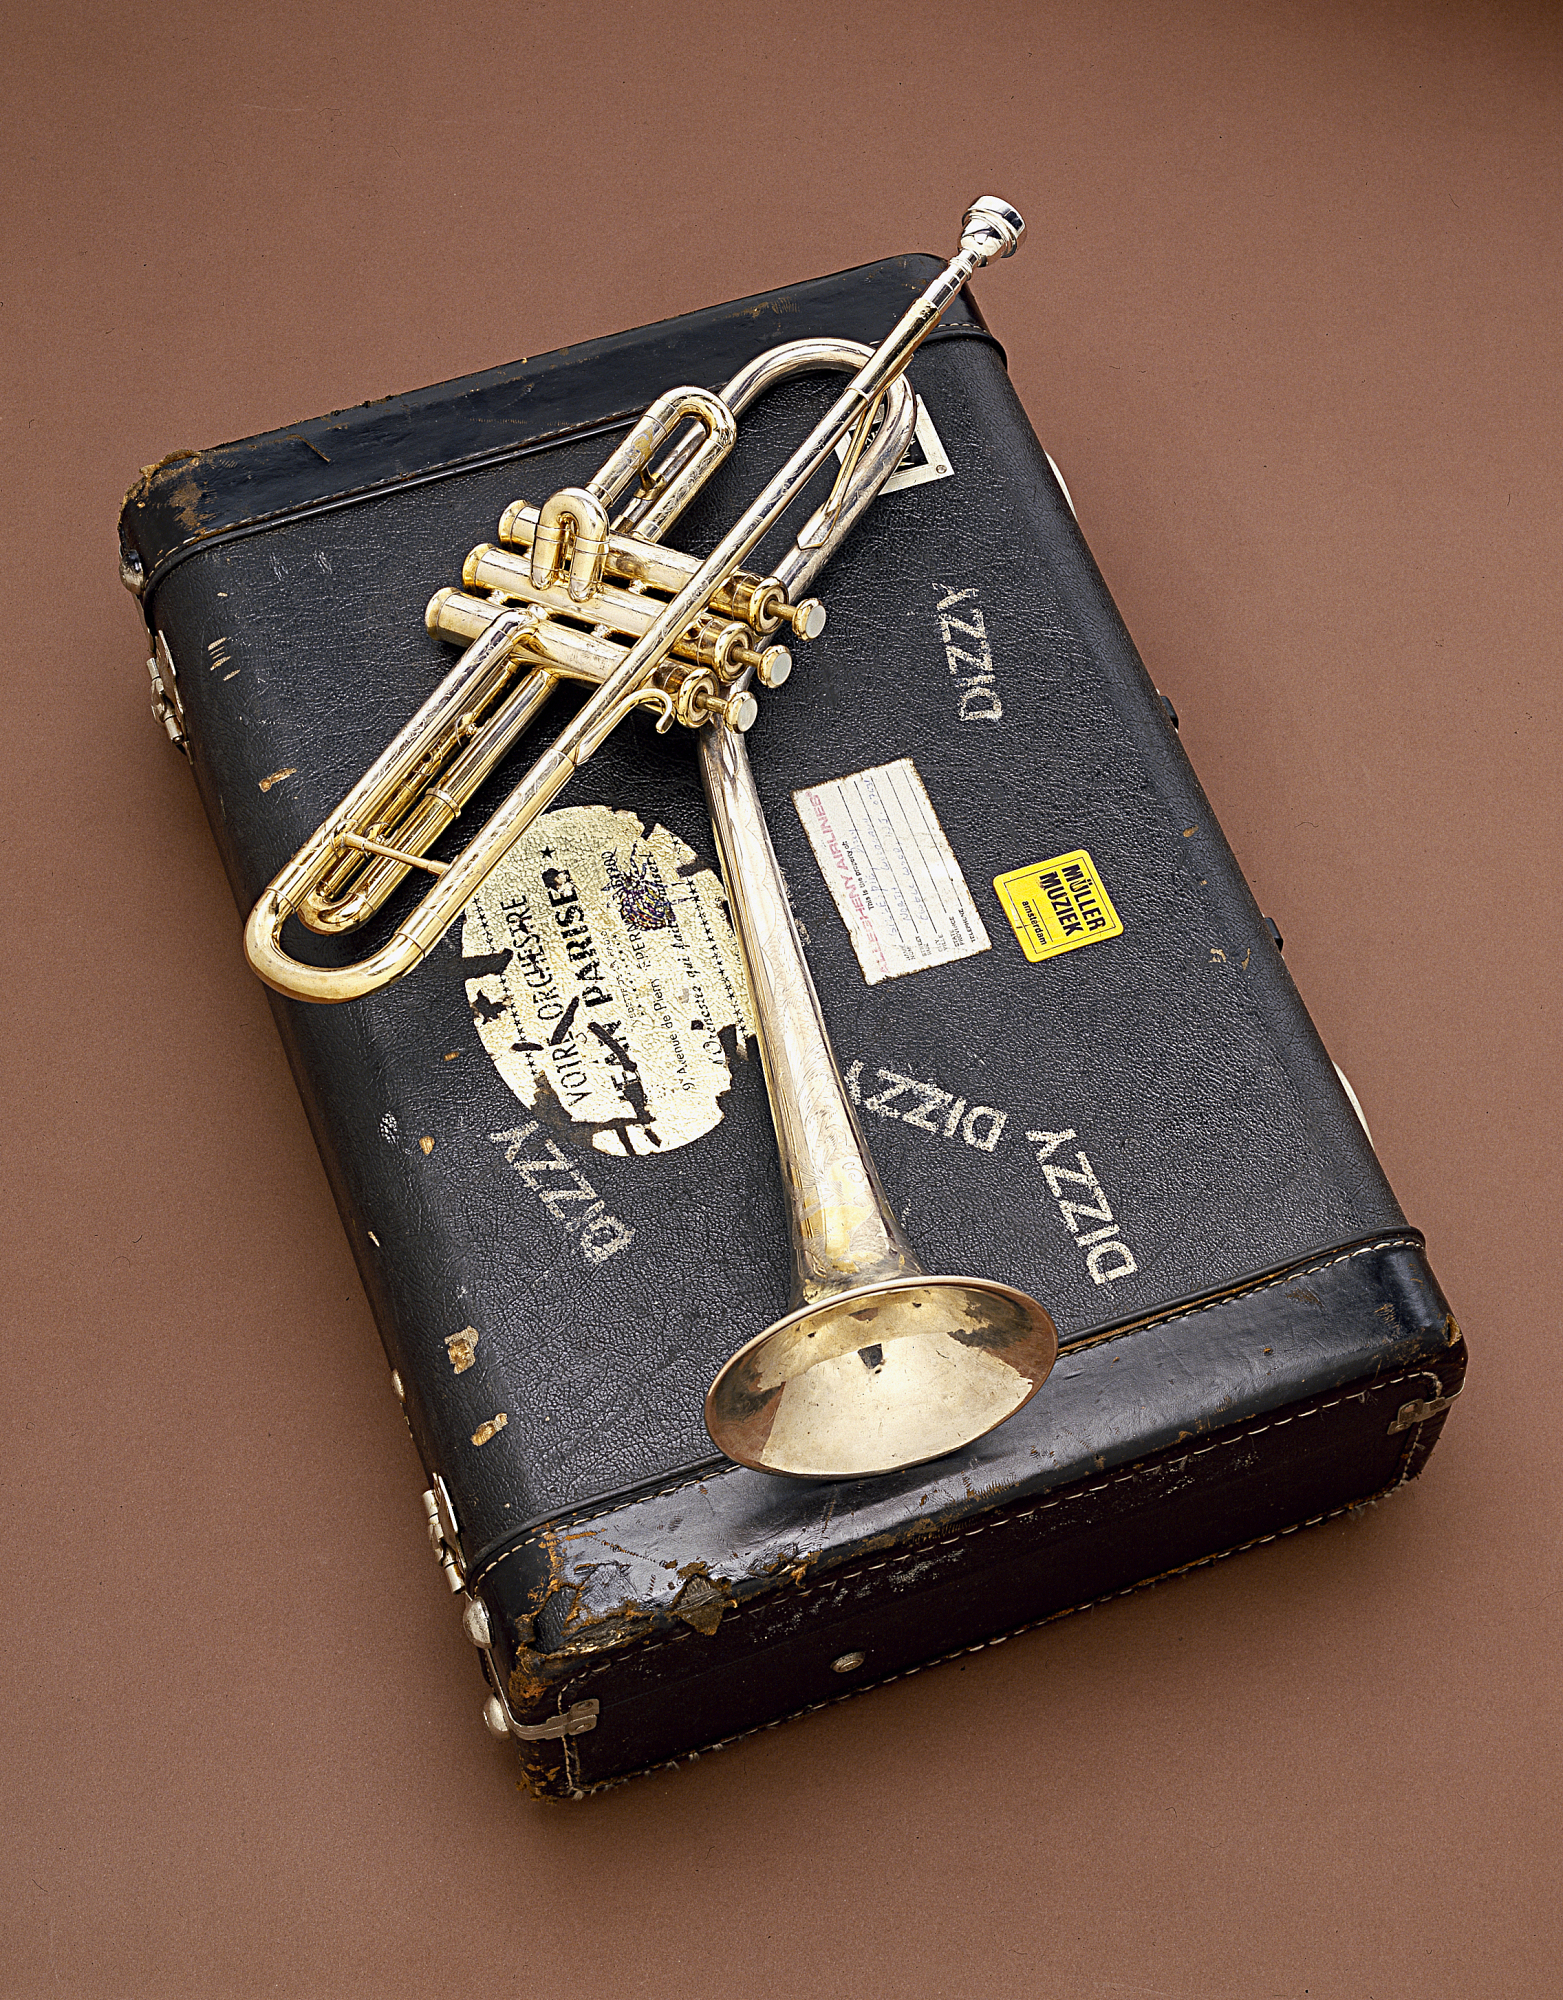 images for King B-Flat Trumpet, used by Dizzy Gillespie